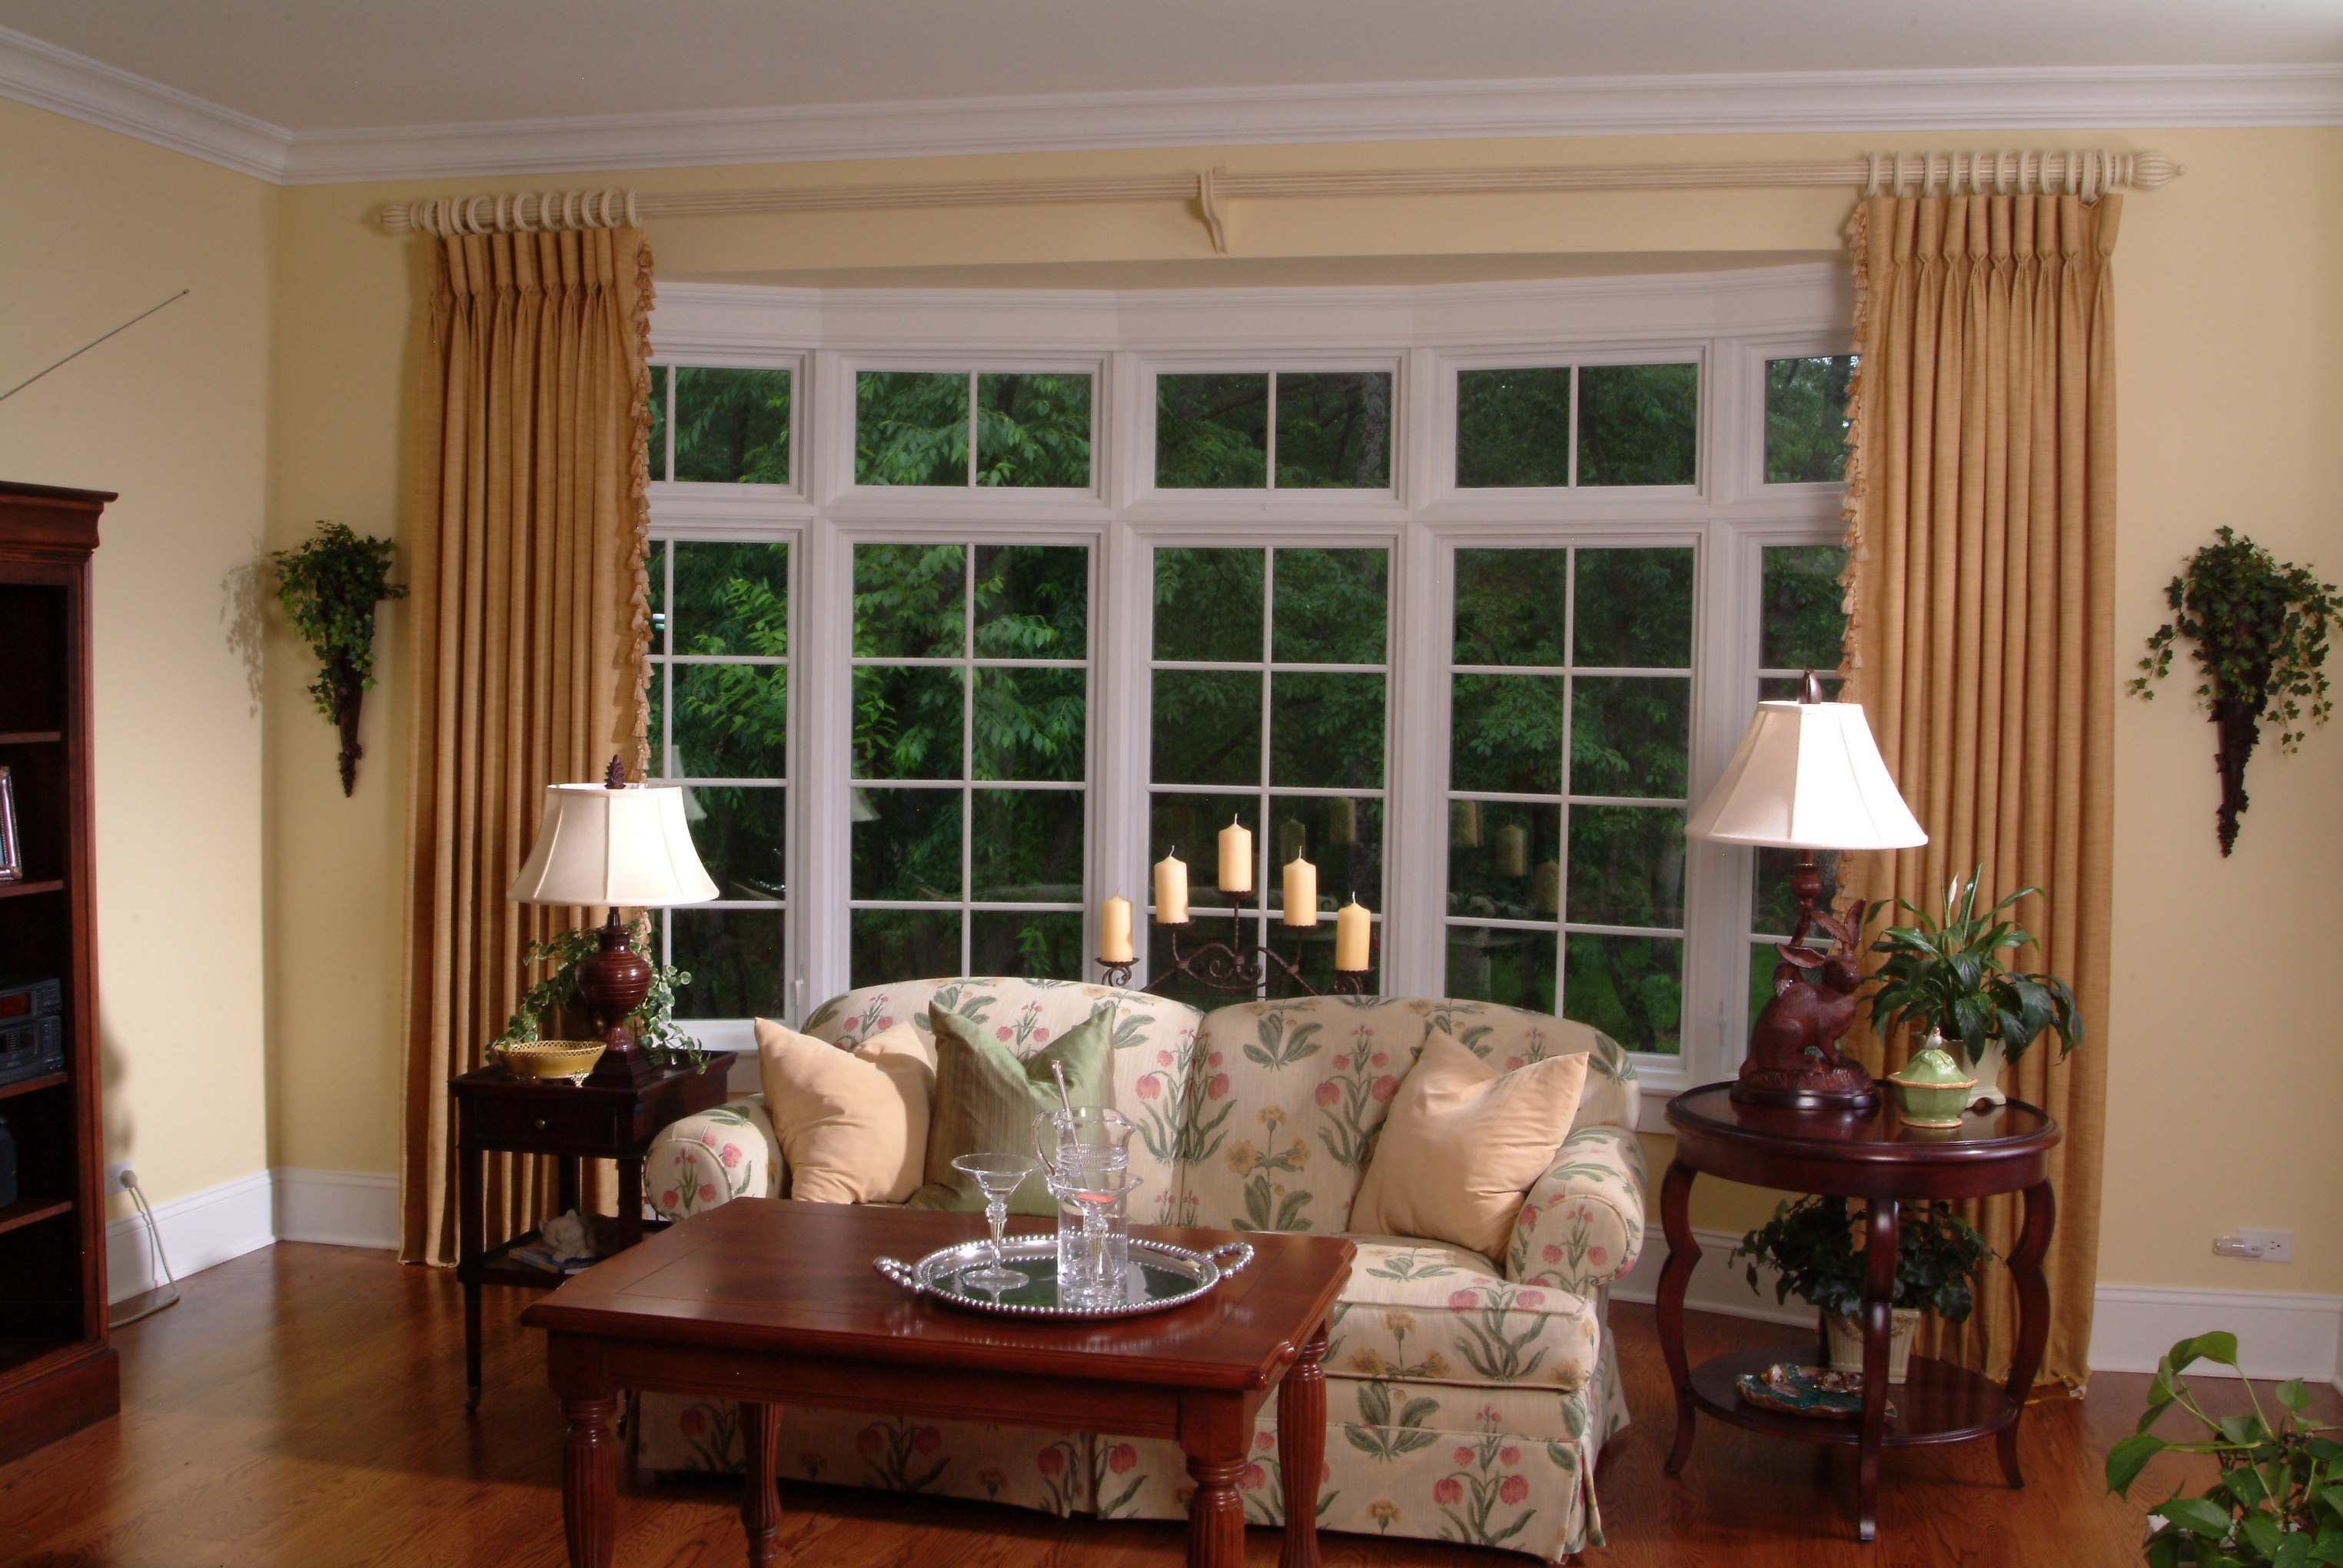 The ideas of window coverings for bay windows homesfeed - Living room with bay window ...